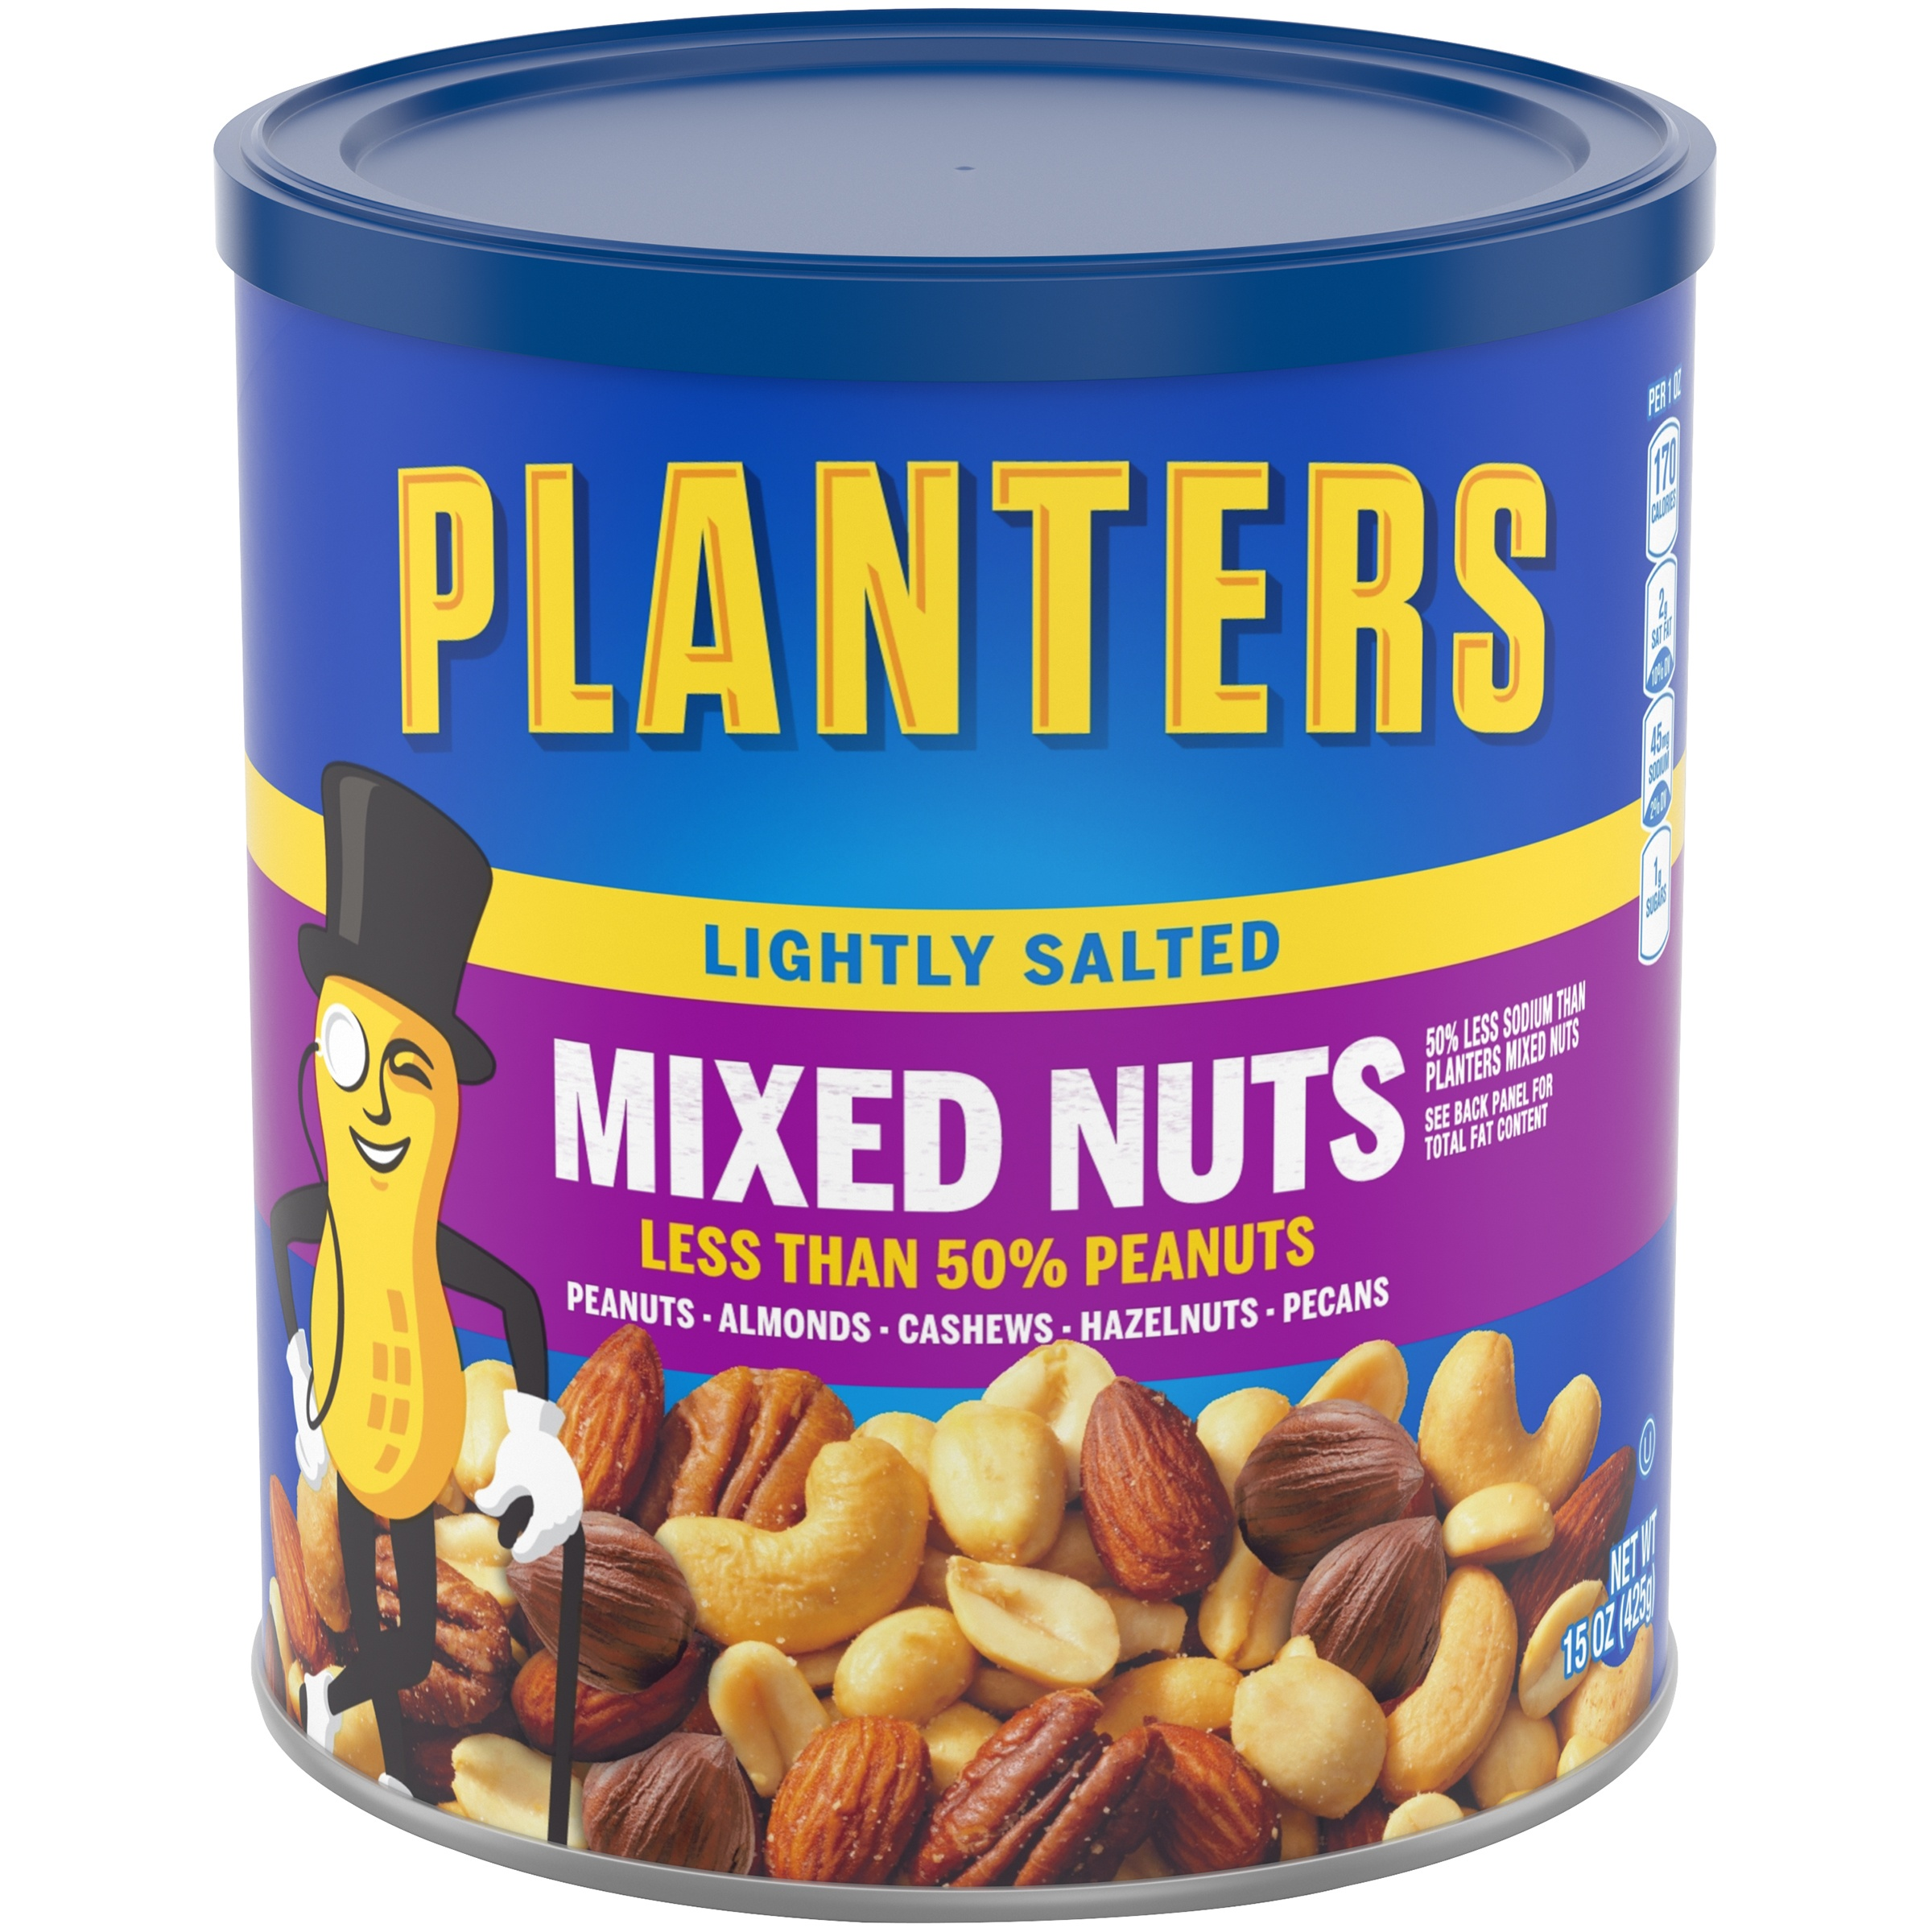 Planters Lightly Salted Mixed Nuts 15 oz. Canister